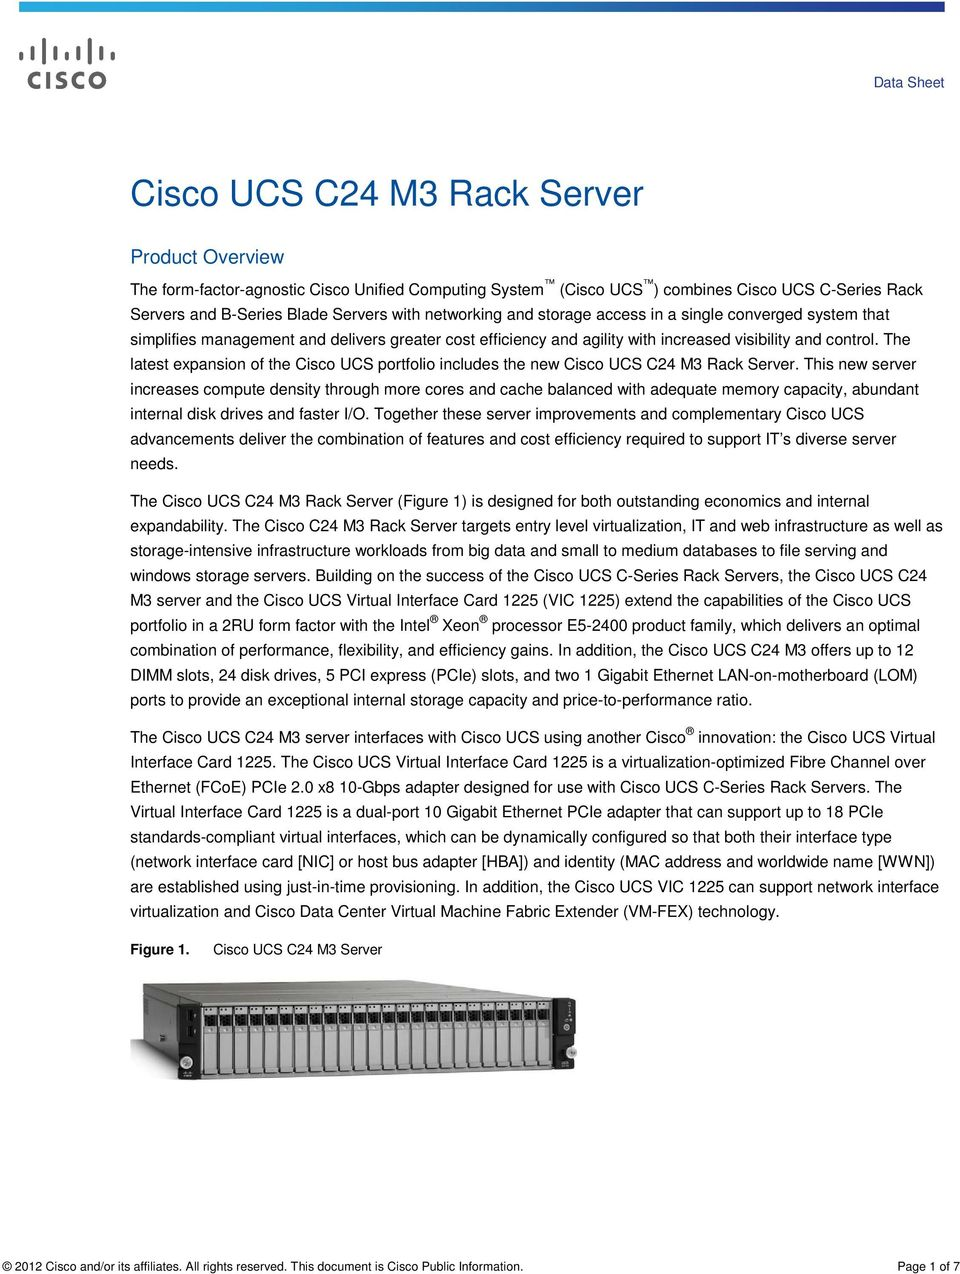 The latest expansion of the Cisco UCS portfolio includes the new Cisco UCS C24 M3 Rack Server.